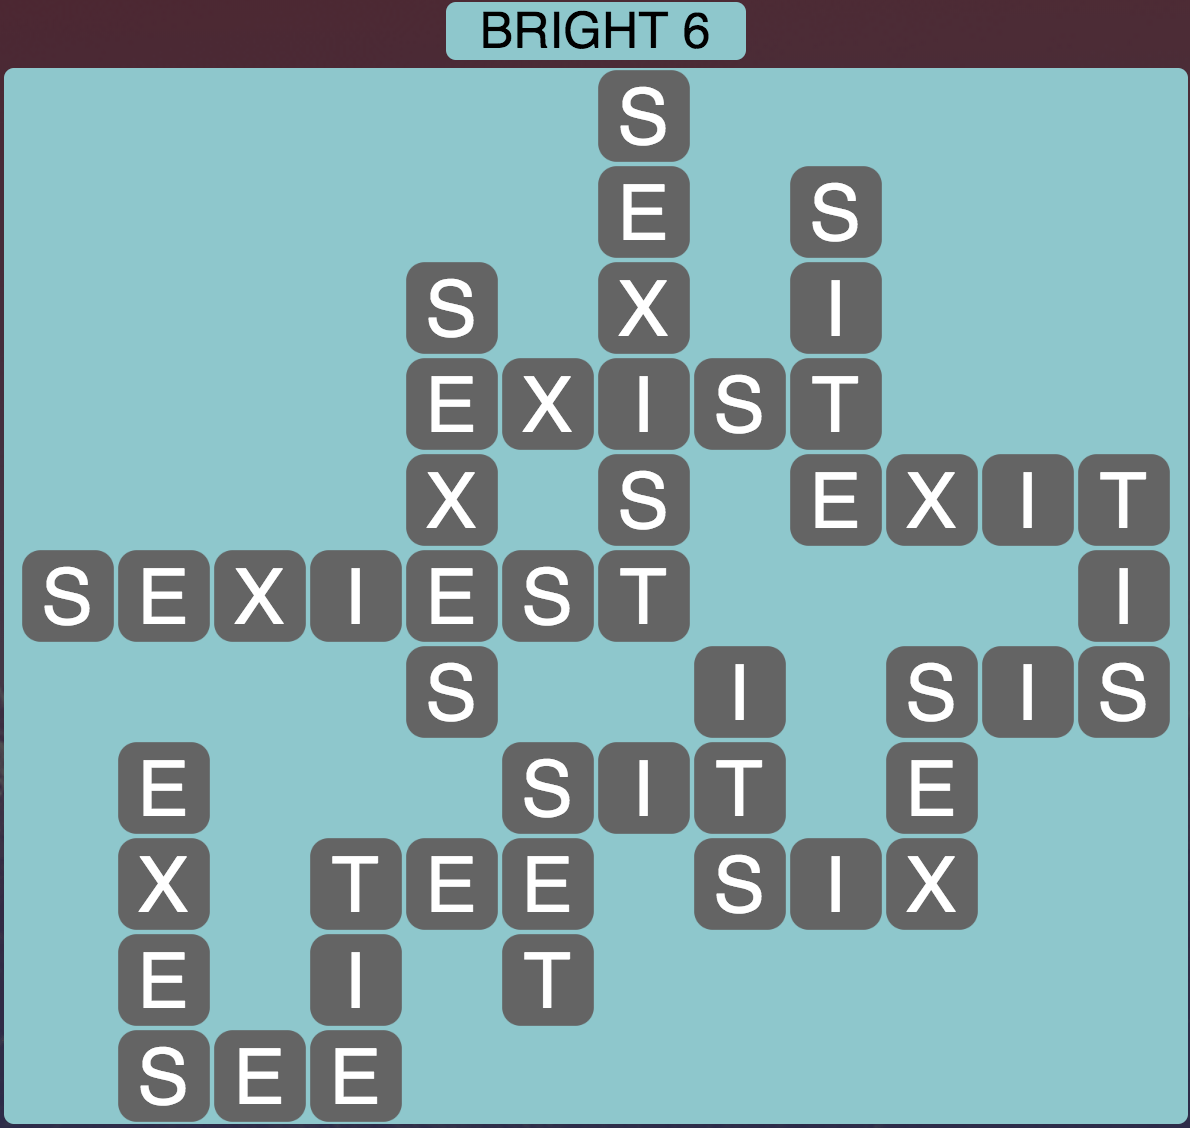 Wordscapes Bright 6 - Level 1702 Answer